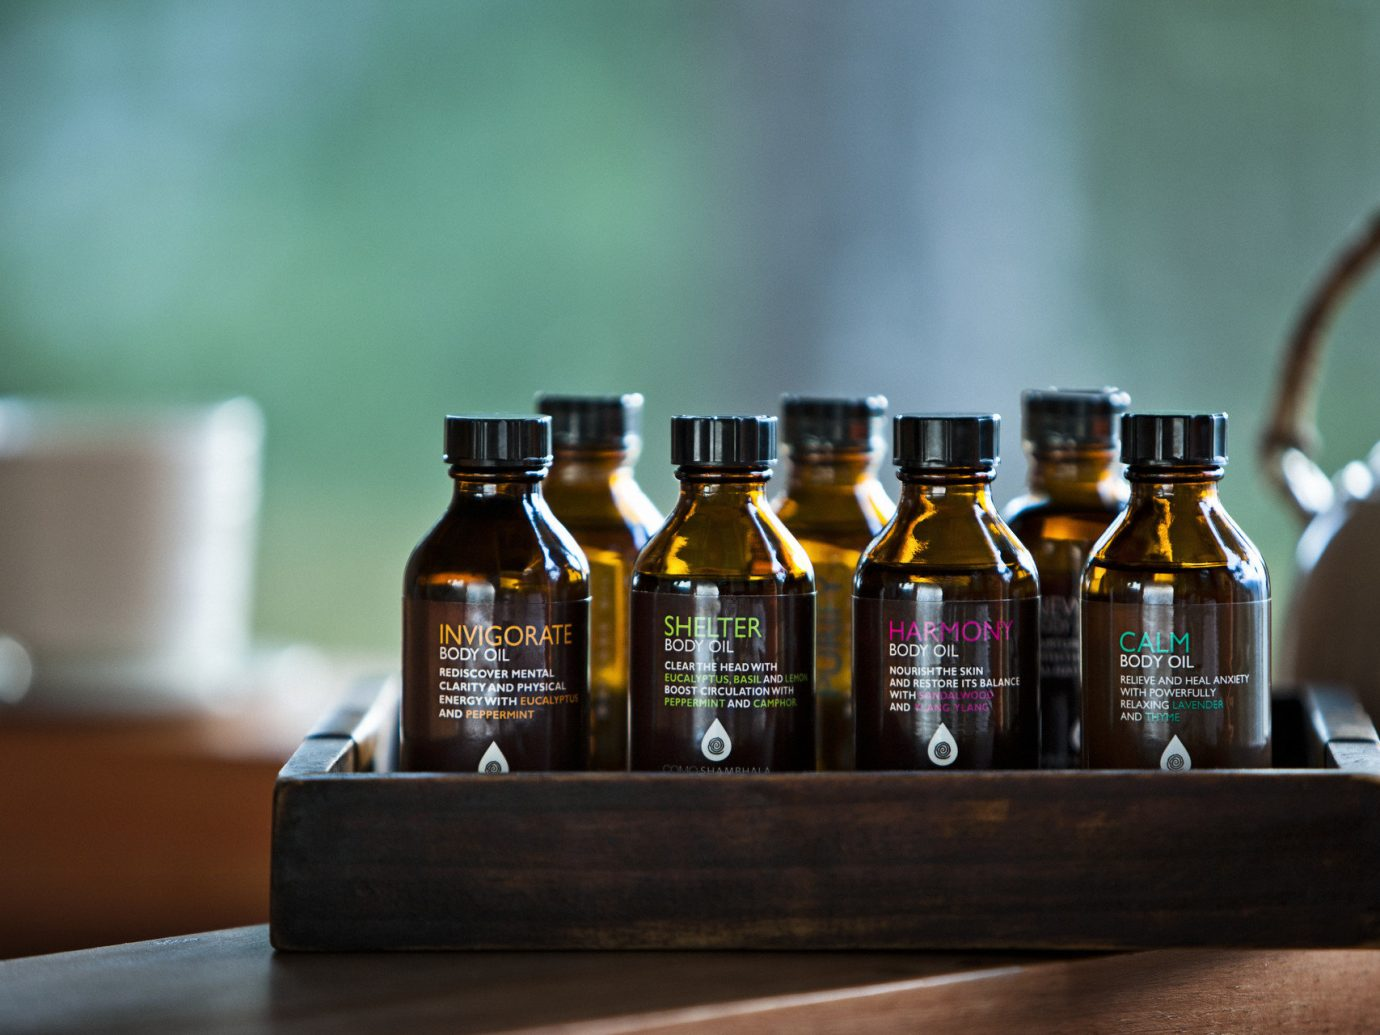 apothecary bottles decor detail Health + Wellness Hotels relaxation Spa Spa Retreats toiletries Travel Tips indoor bottle wall table counter distilled beverage liqueur alcoholic beverage alcohol Drink wine bottle whisky sense drinkware beer beverage